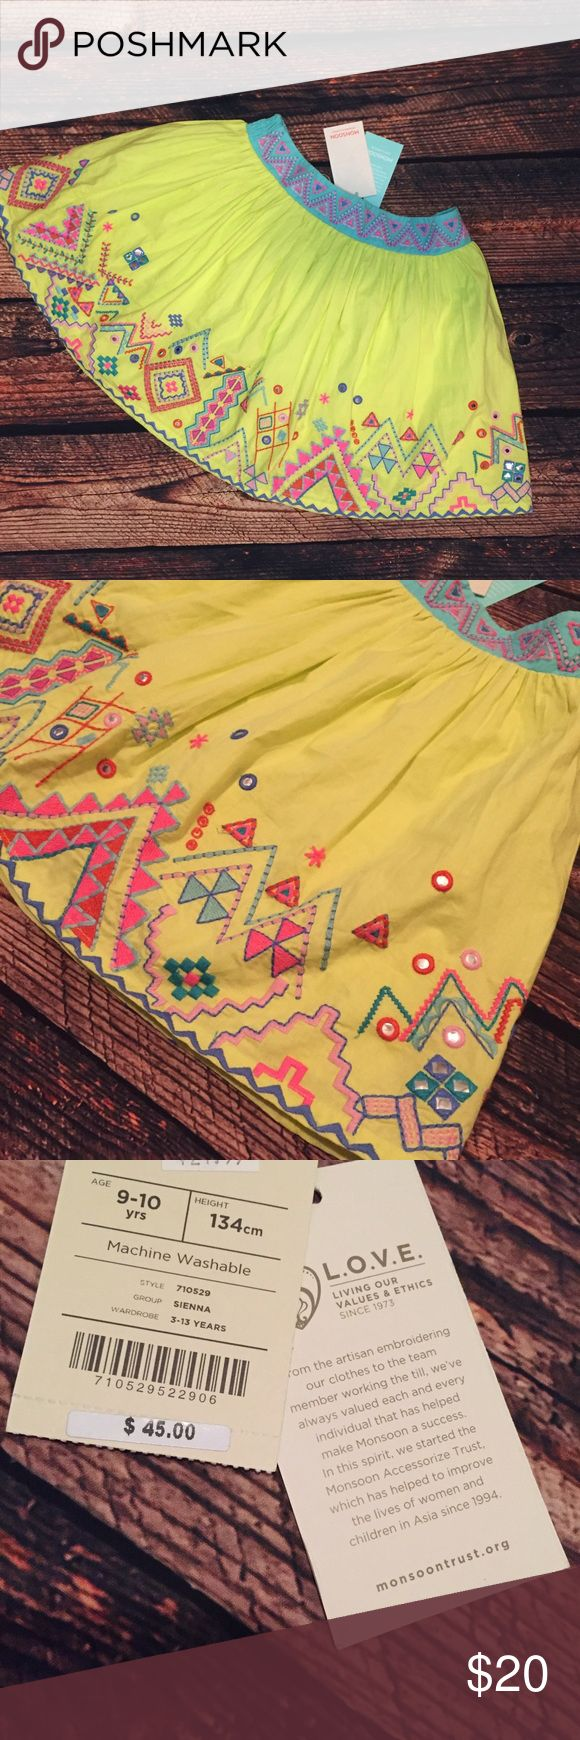 Monsoon Girls Skirt Brand new Monsoon skirt. Size 9-10 years. Beautiful embroidery and sparkles! No trades. Monsoon Bottoms Skirts